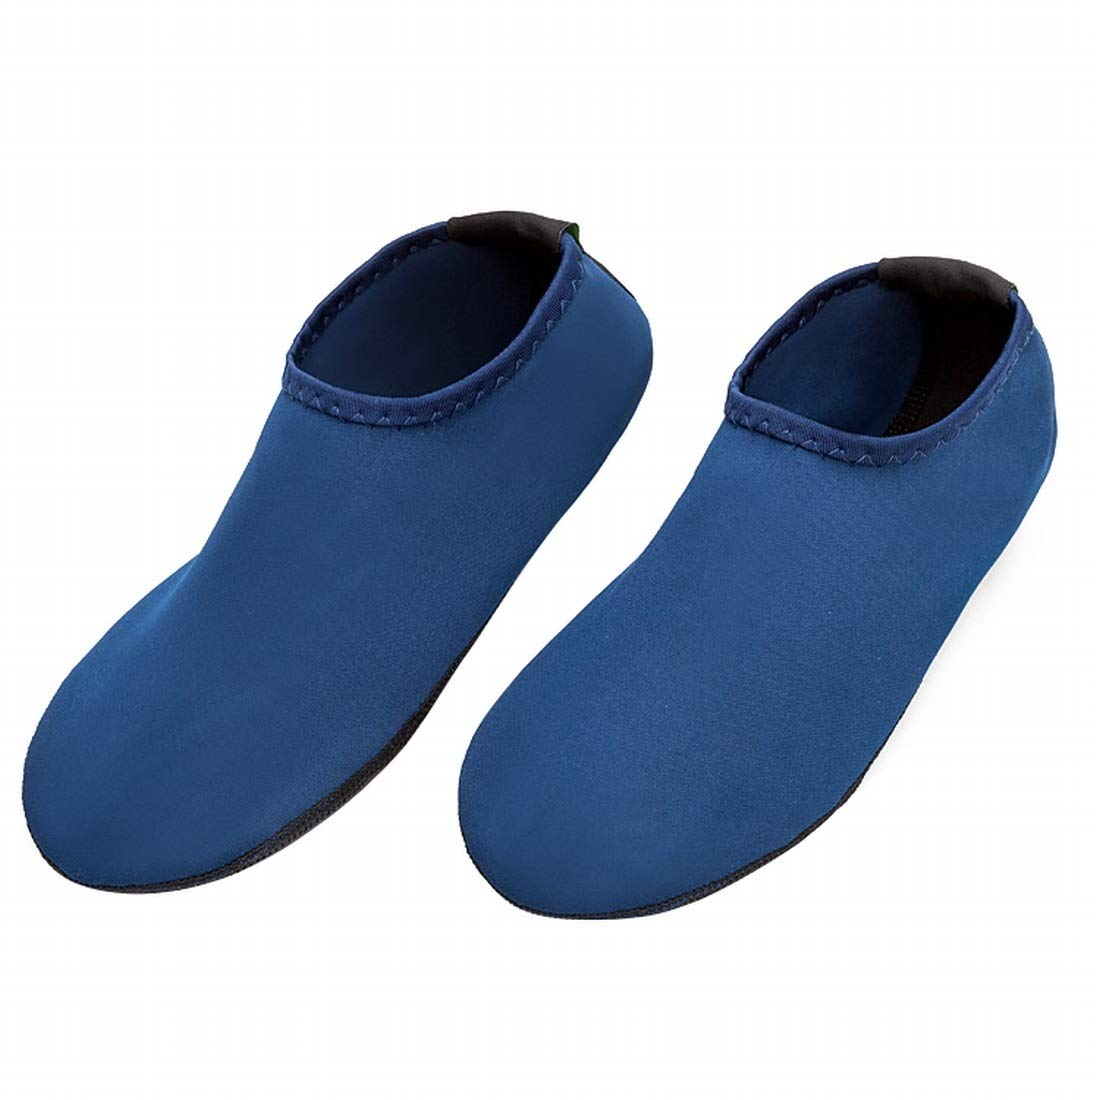 Sinngukaba Diving Snorkeling Beach Shoes and Socks Breathable Non-Slip Adult Quick-Drying Anti-Cutting Soft Bottom Swimming Upstream Shoes (Color : Blue, Size : M)